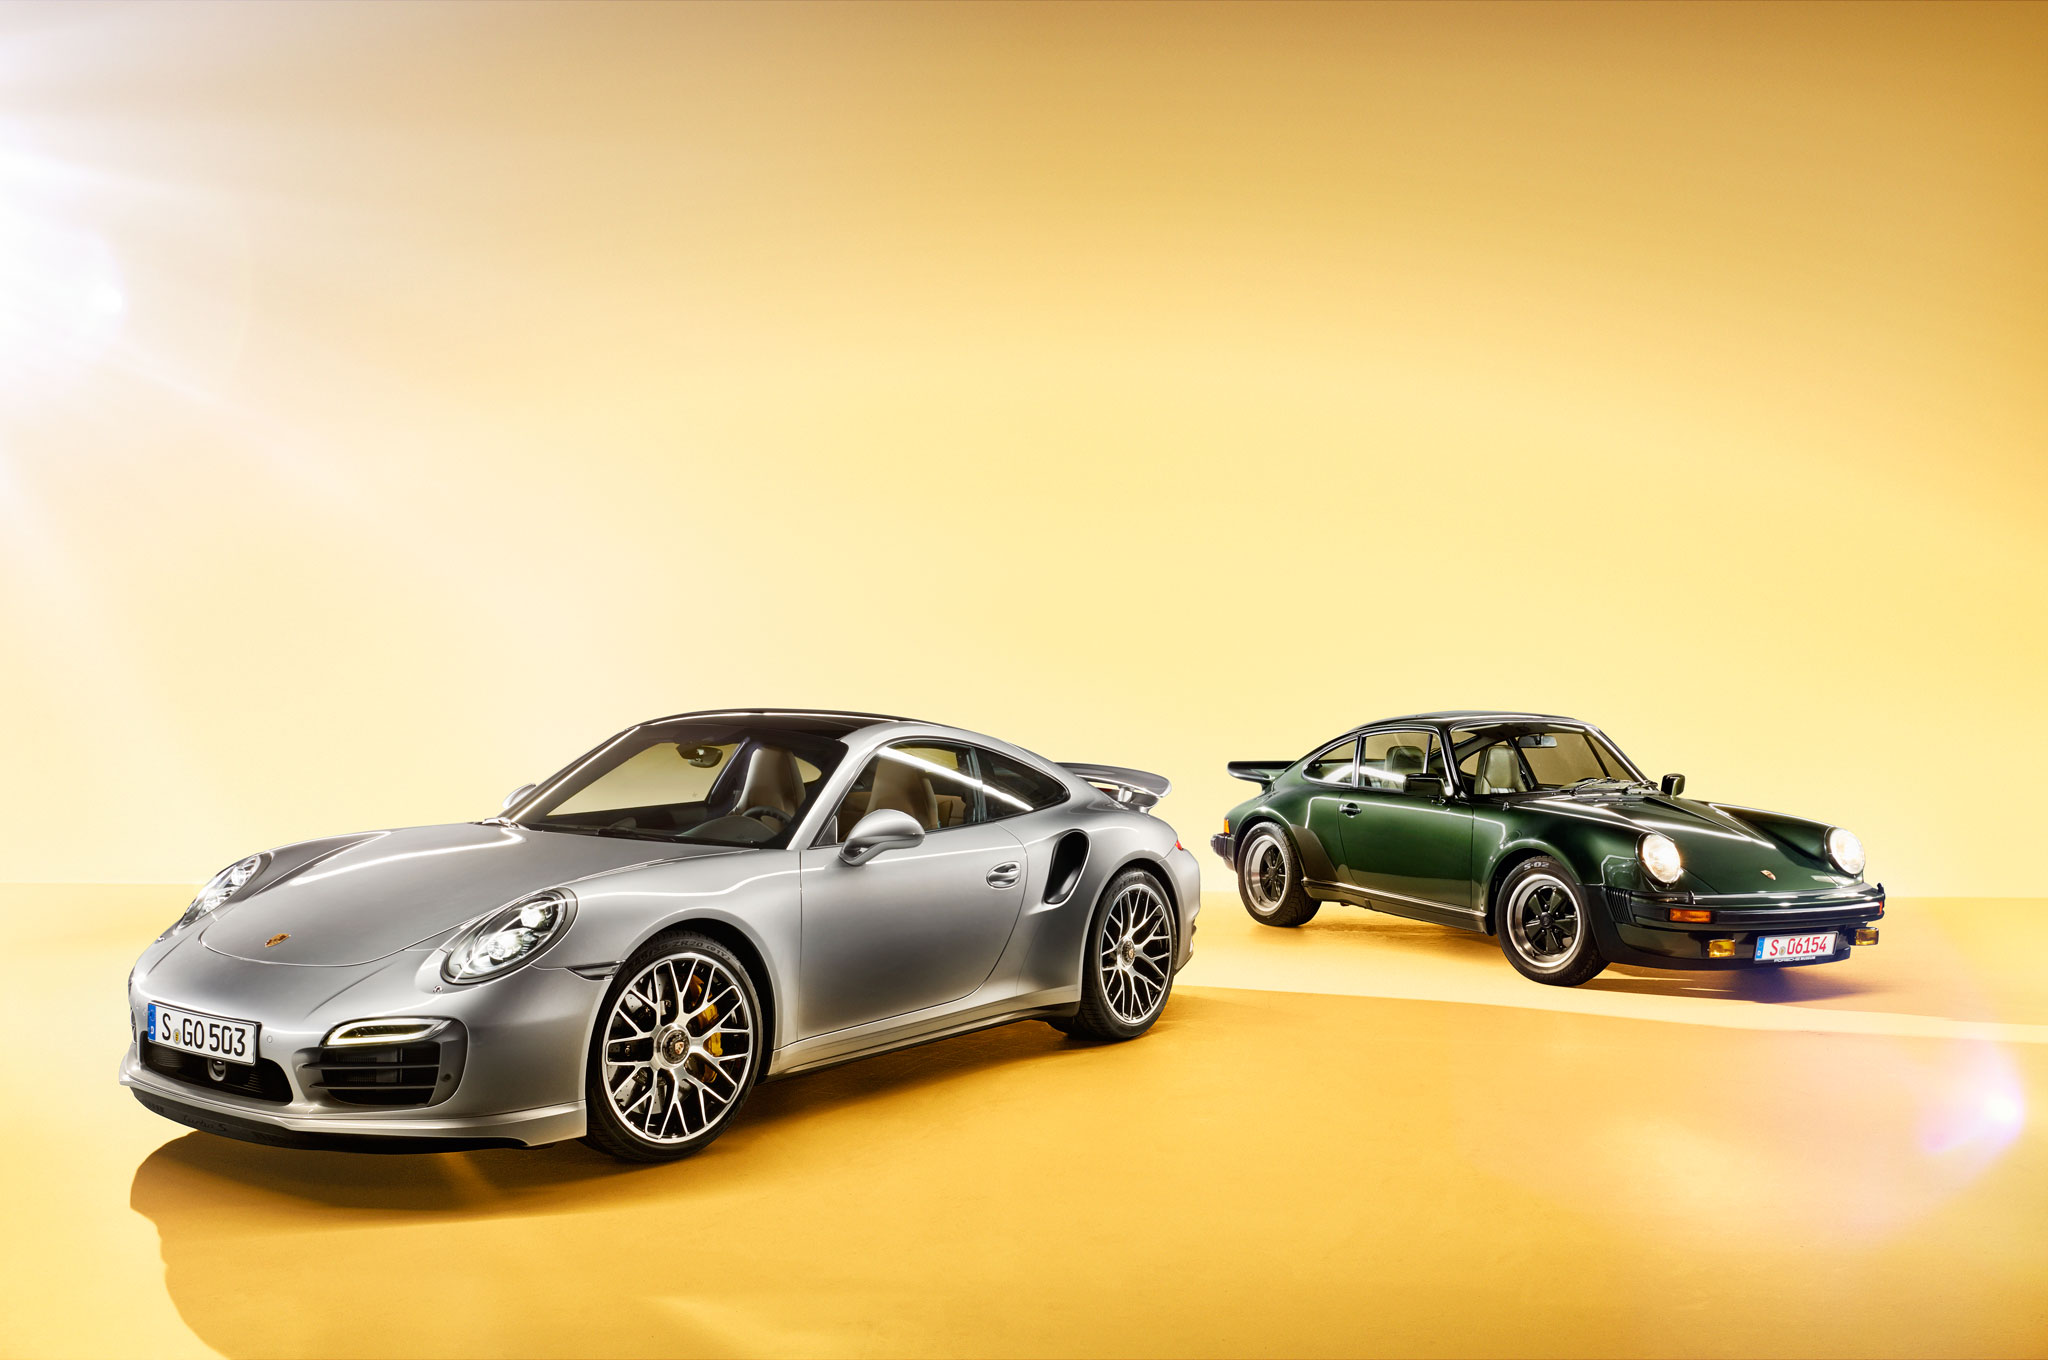 2014 Porsche 911 Turbo And 1973 Porsche 911 Turbo Front View1